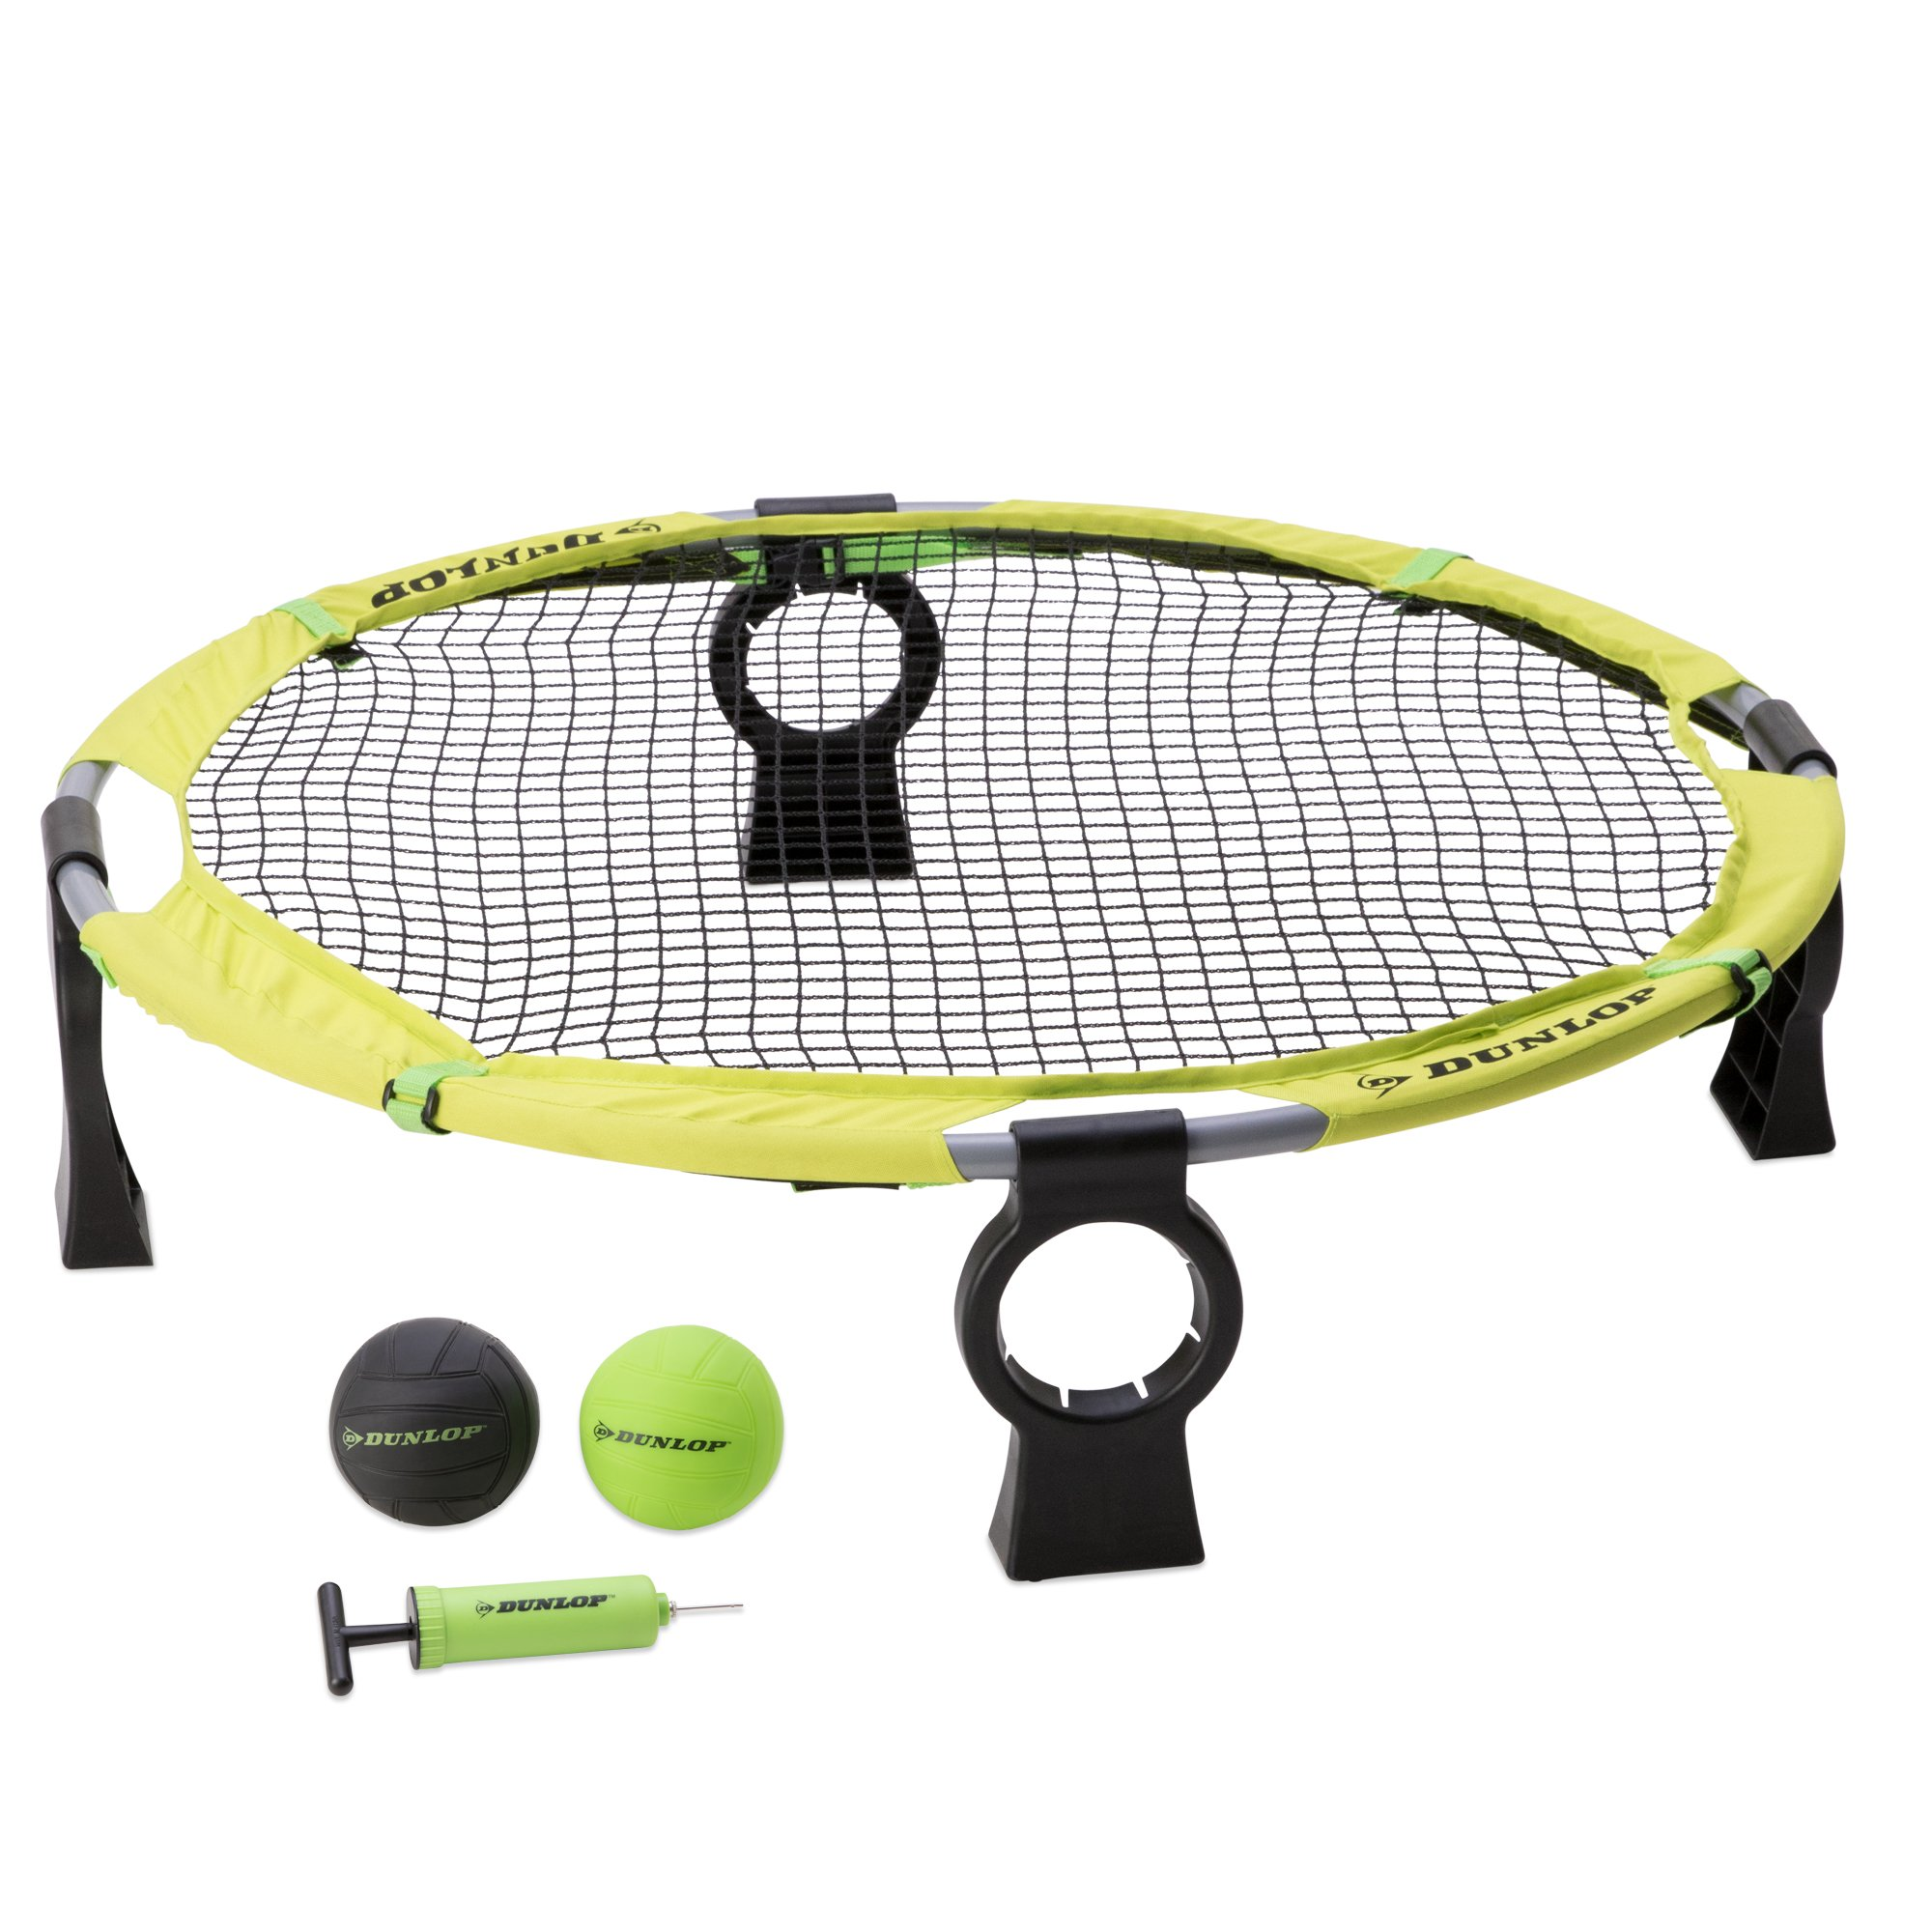 Dunlop Premium Spike Ball Battle Game Set - Spyderball Combo Sets for Lawn, Beach, Camping, Yard, Outdoor Games - Competitive or Recreational Slammo Volleyball Tournament - Fun Kit for Adults, Kids